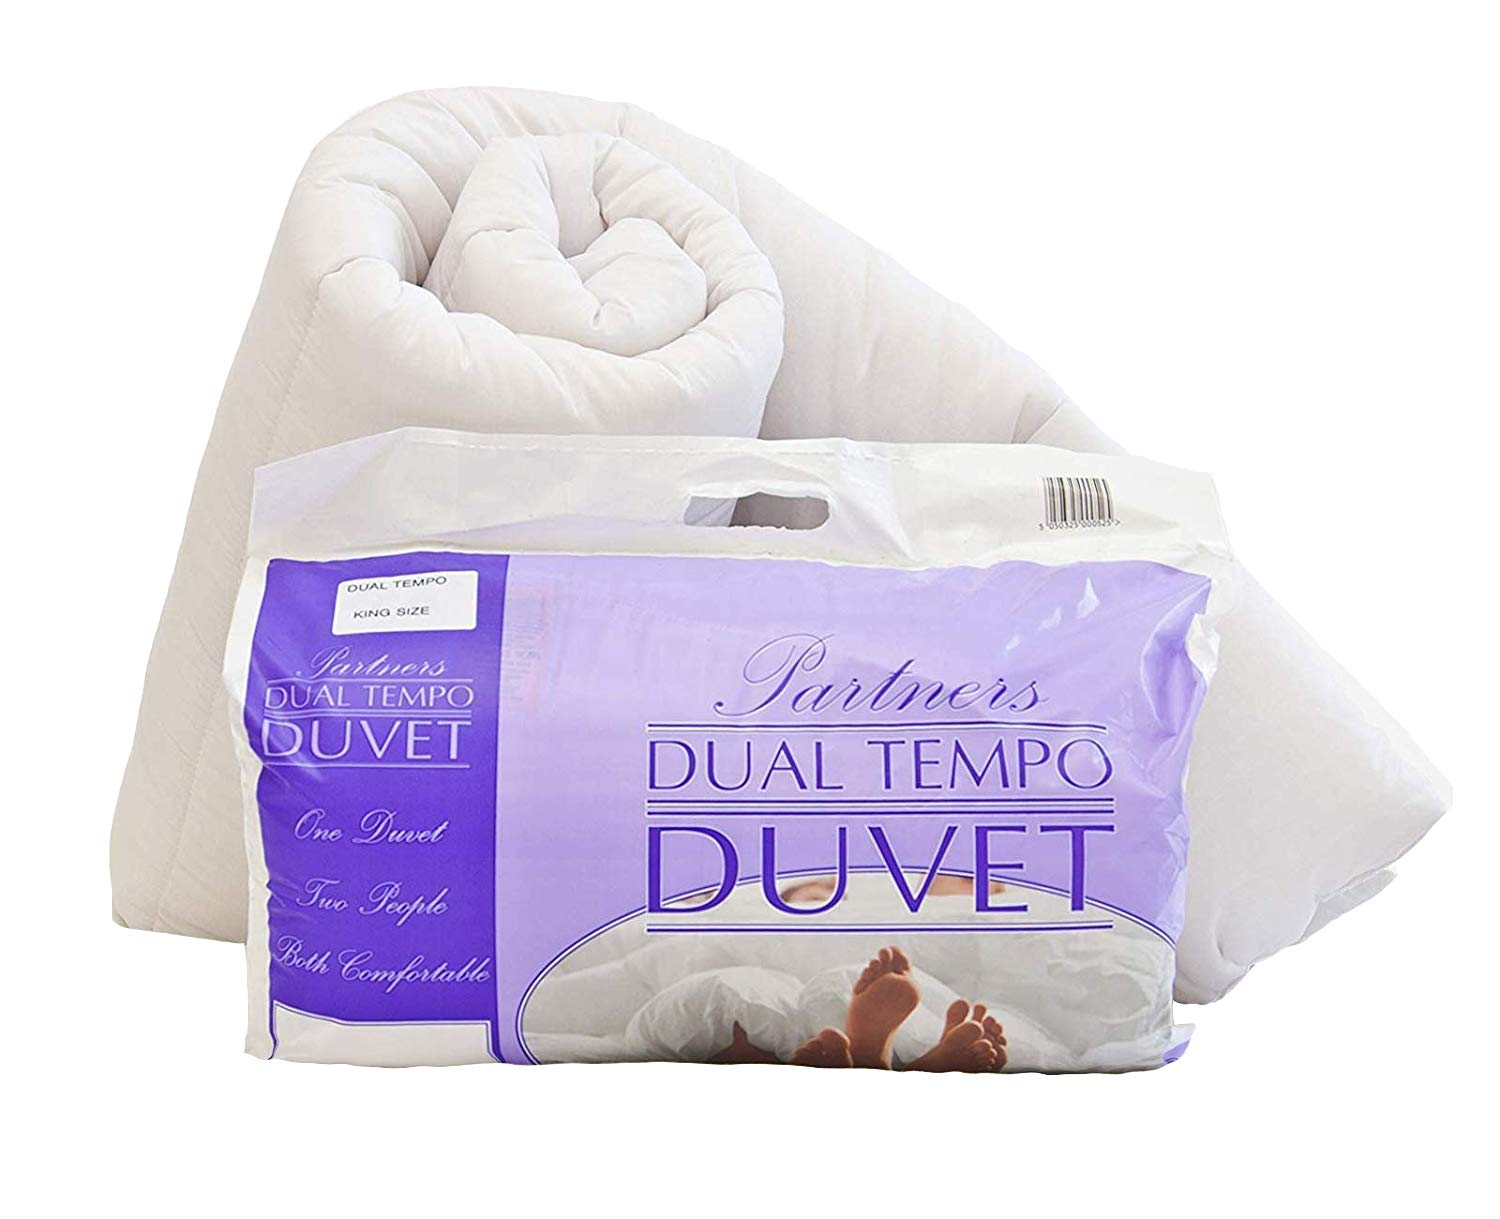 His and Hers Dual Tempo, Half and Half Partners Duvet Quilt - 9 & 4.5 Tog - DOUBLE - Made in the UK UK Care Direct